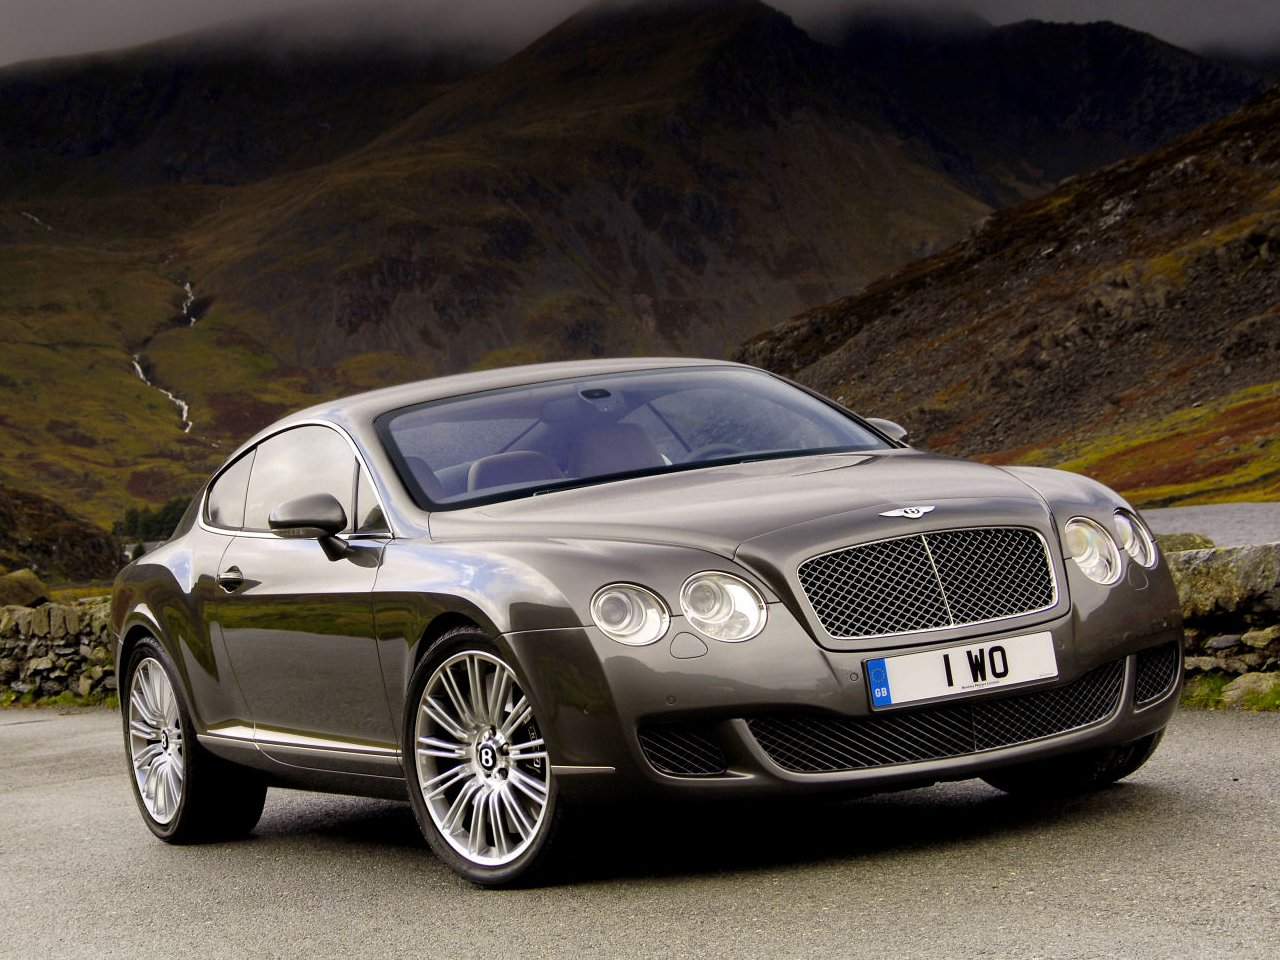 Bentley Cars HD Wallpaper & Pics